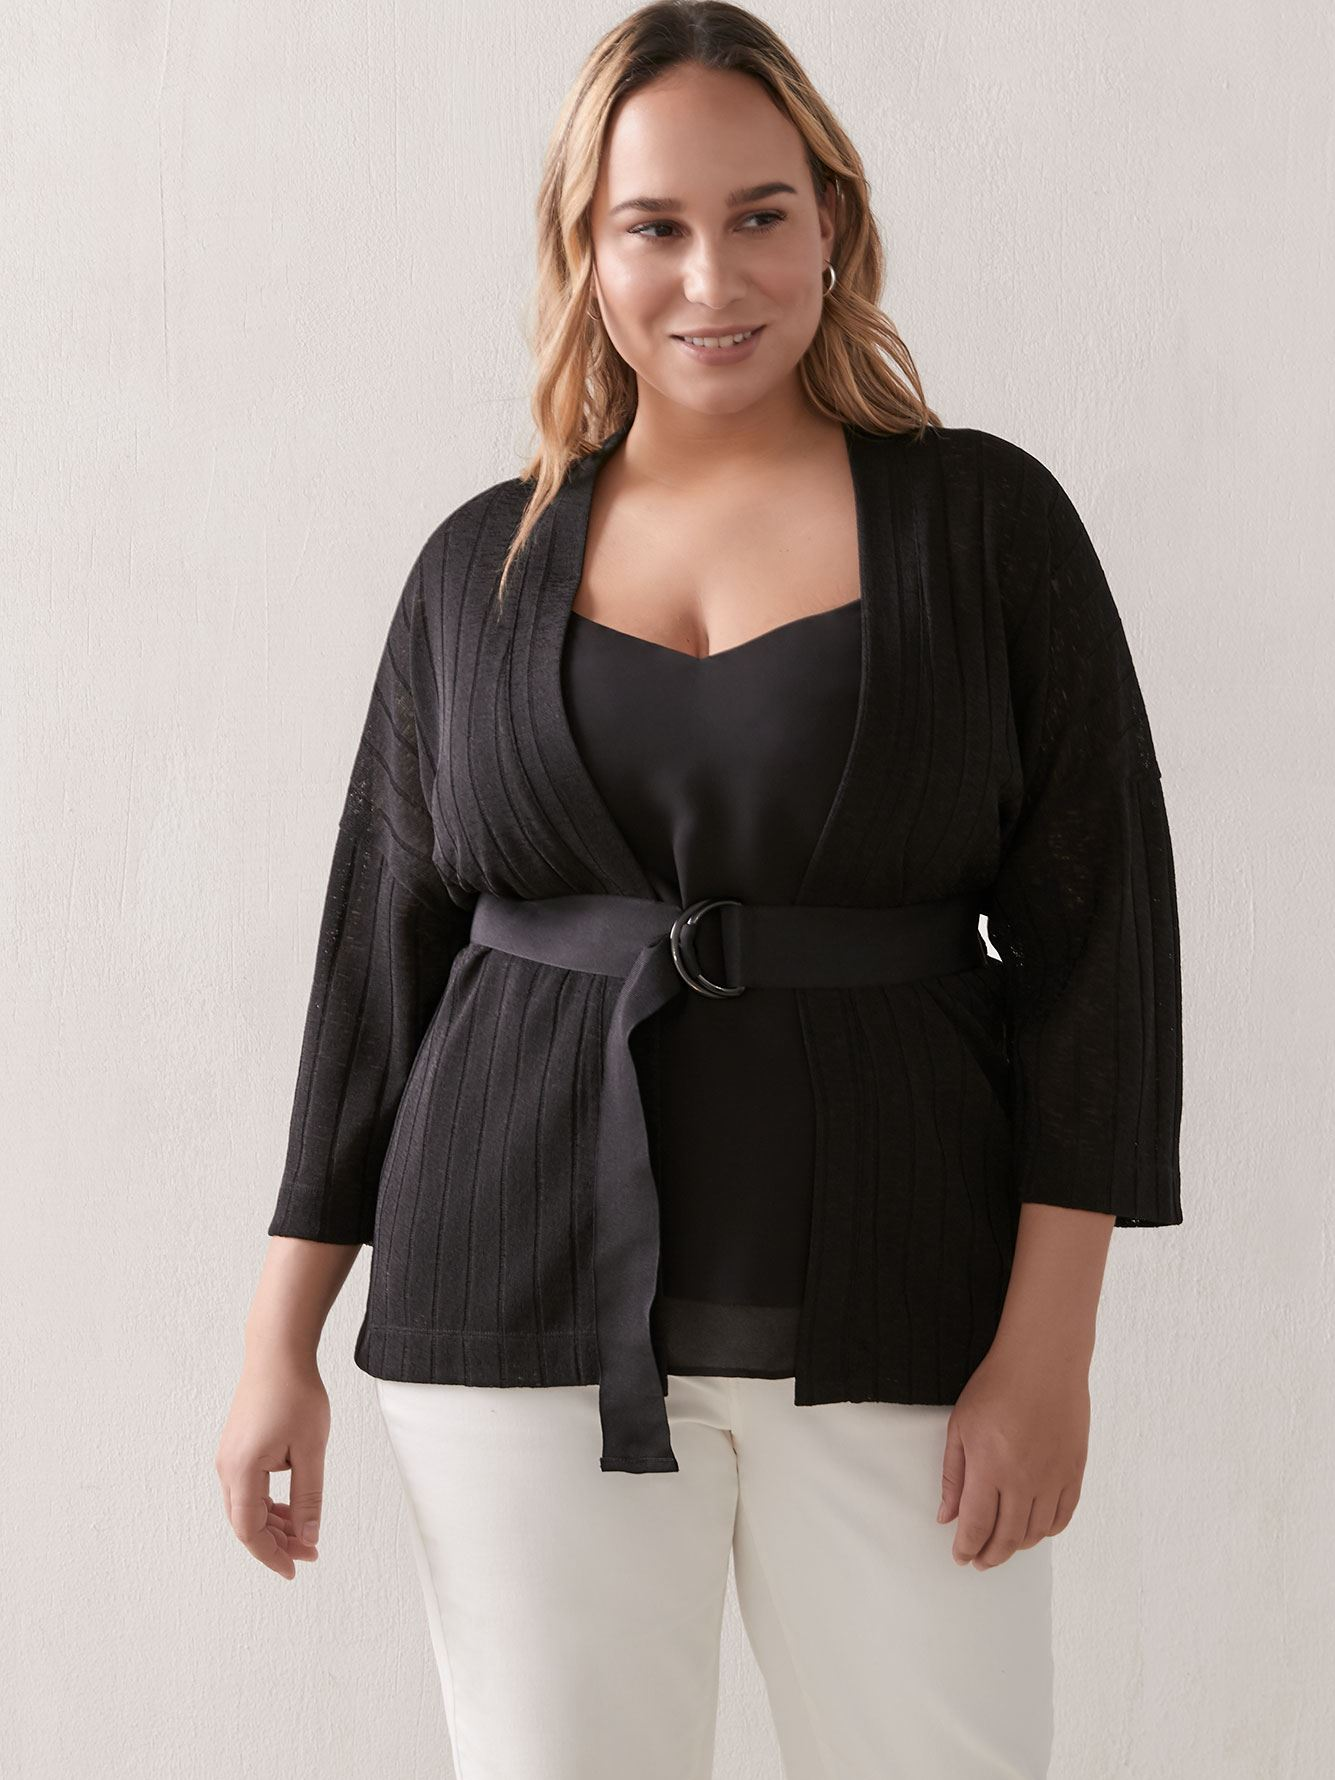 Wide-Sleeve Belted Cardigan - Addition Elle 6